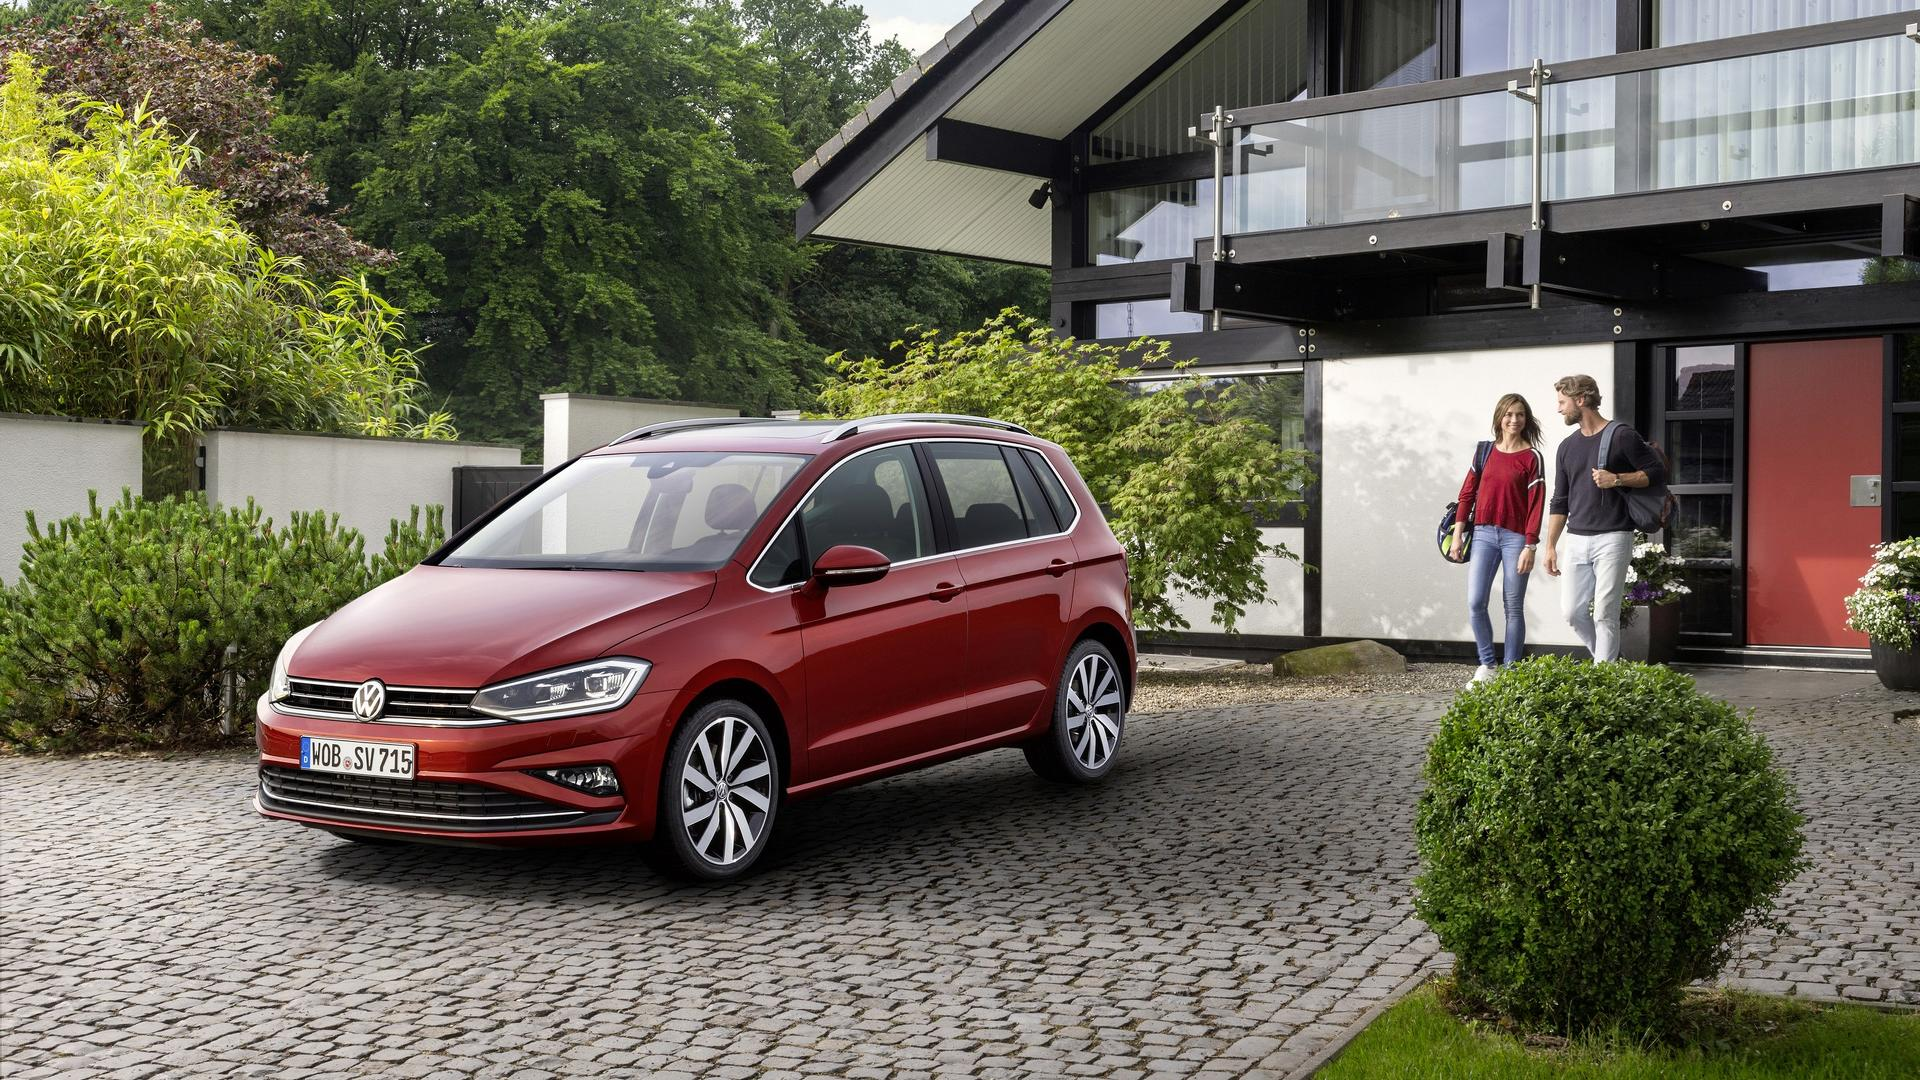 2018 vw golf sportsvan facelift unveiled with more technology. Black Bedroom Furniture Sets. Home Design Ideas